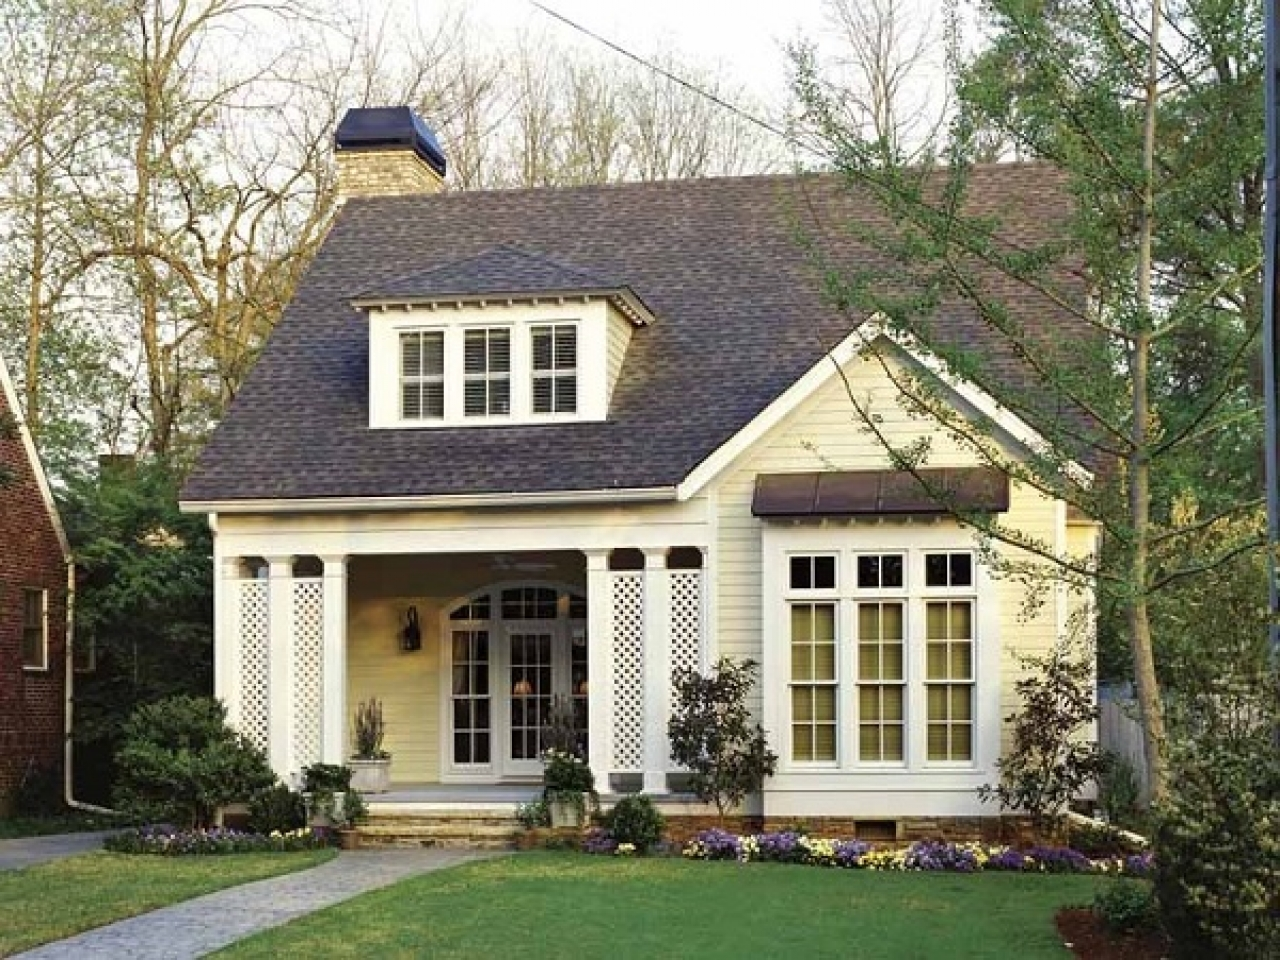 Small cottage house plans small country house plans small Simple small house